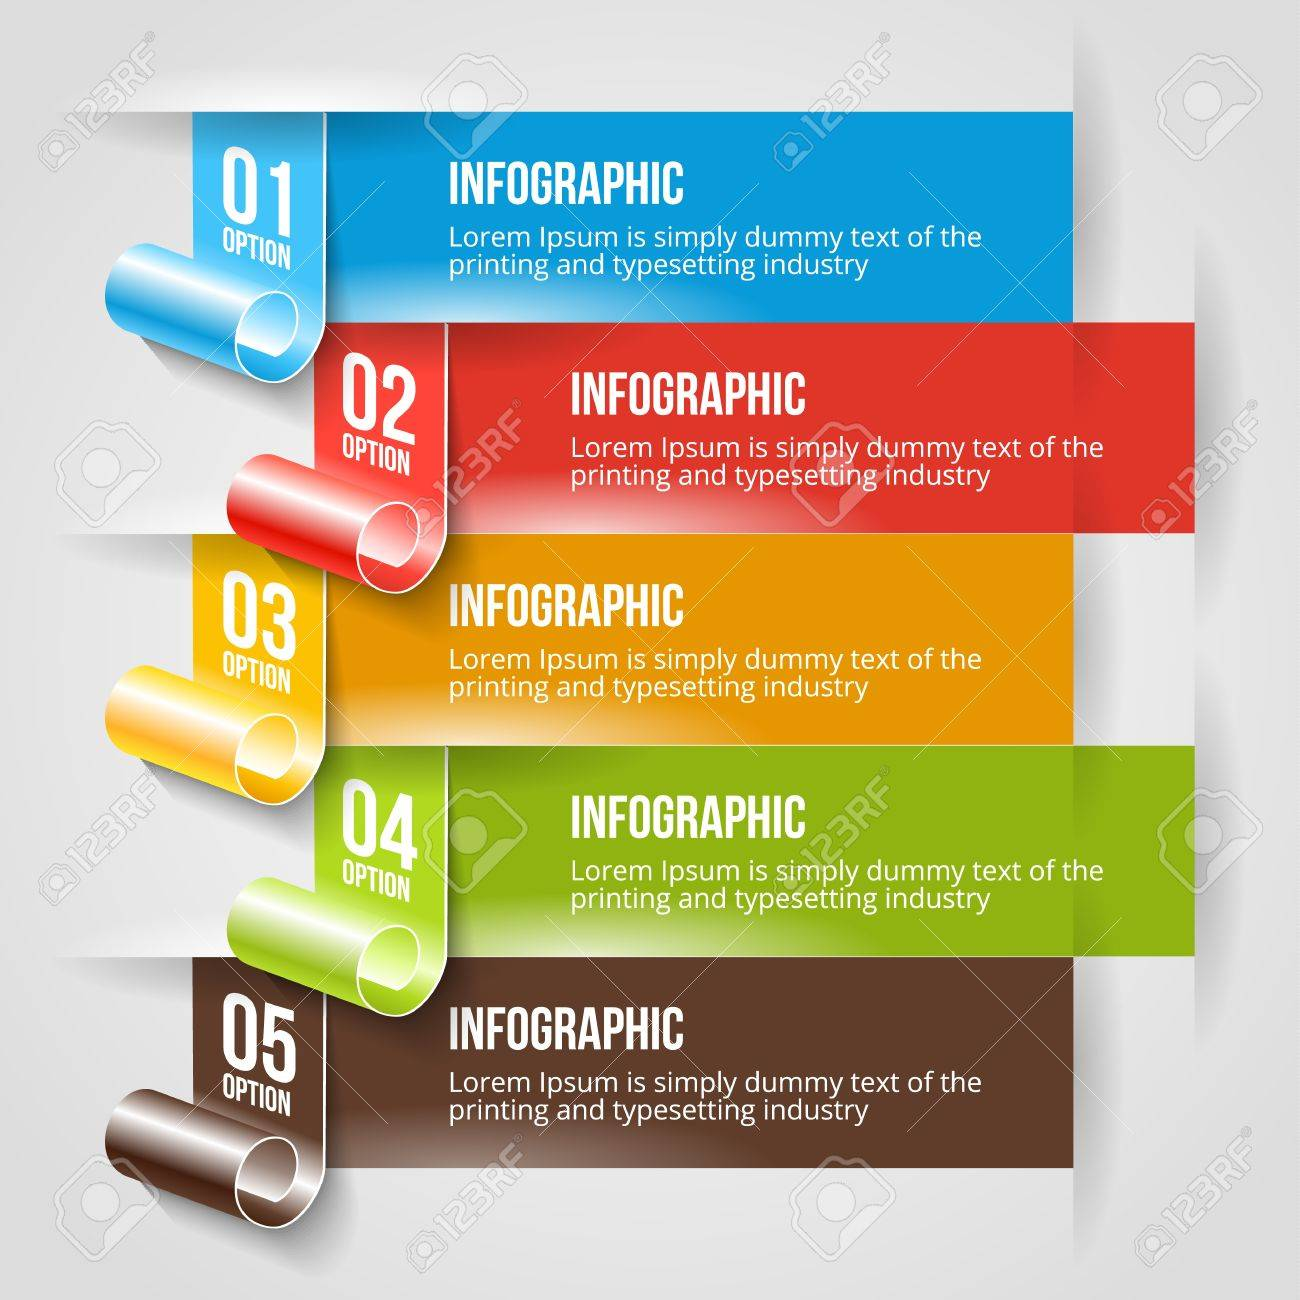 Design banner template - Modern Infographic And Options Banner Template Vector Web Design Layout Stock Vector 19007429